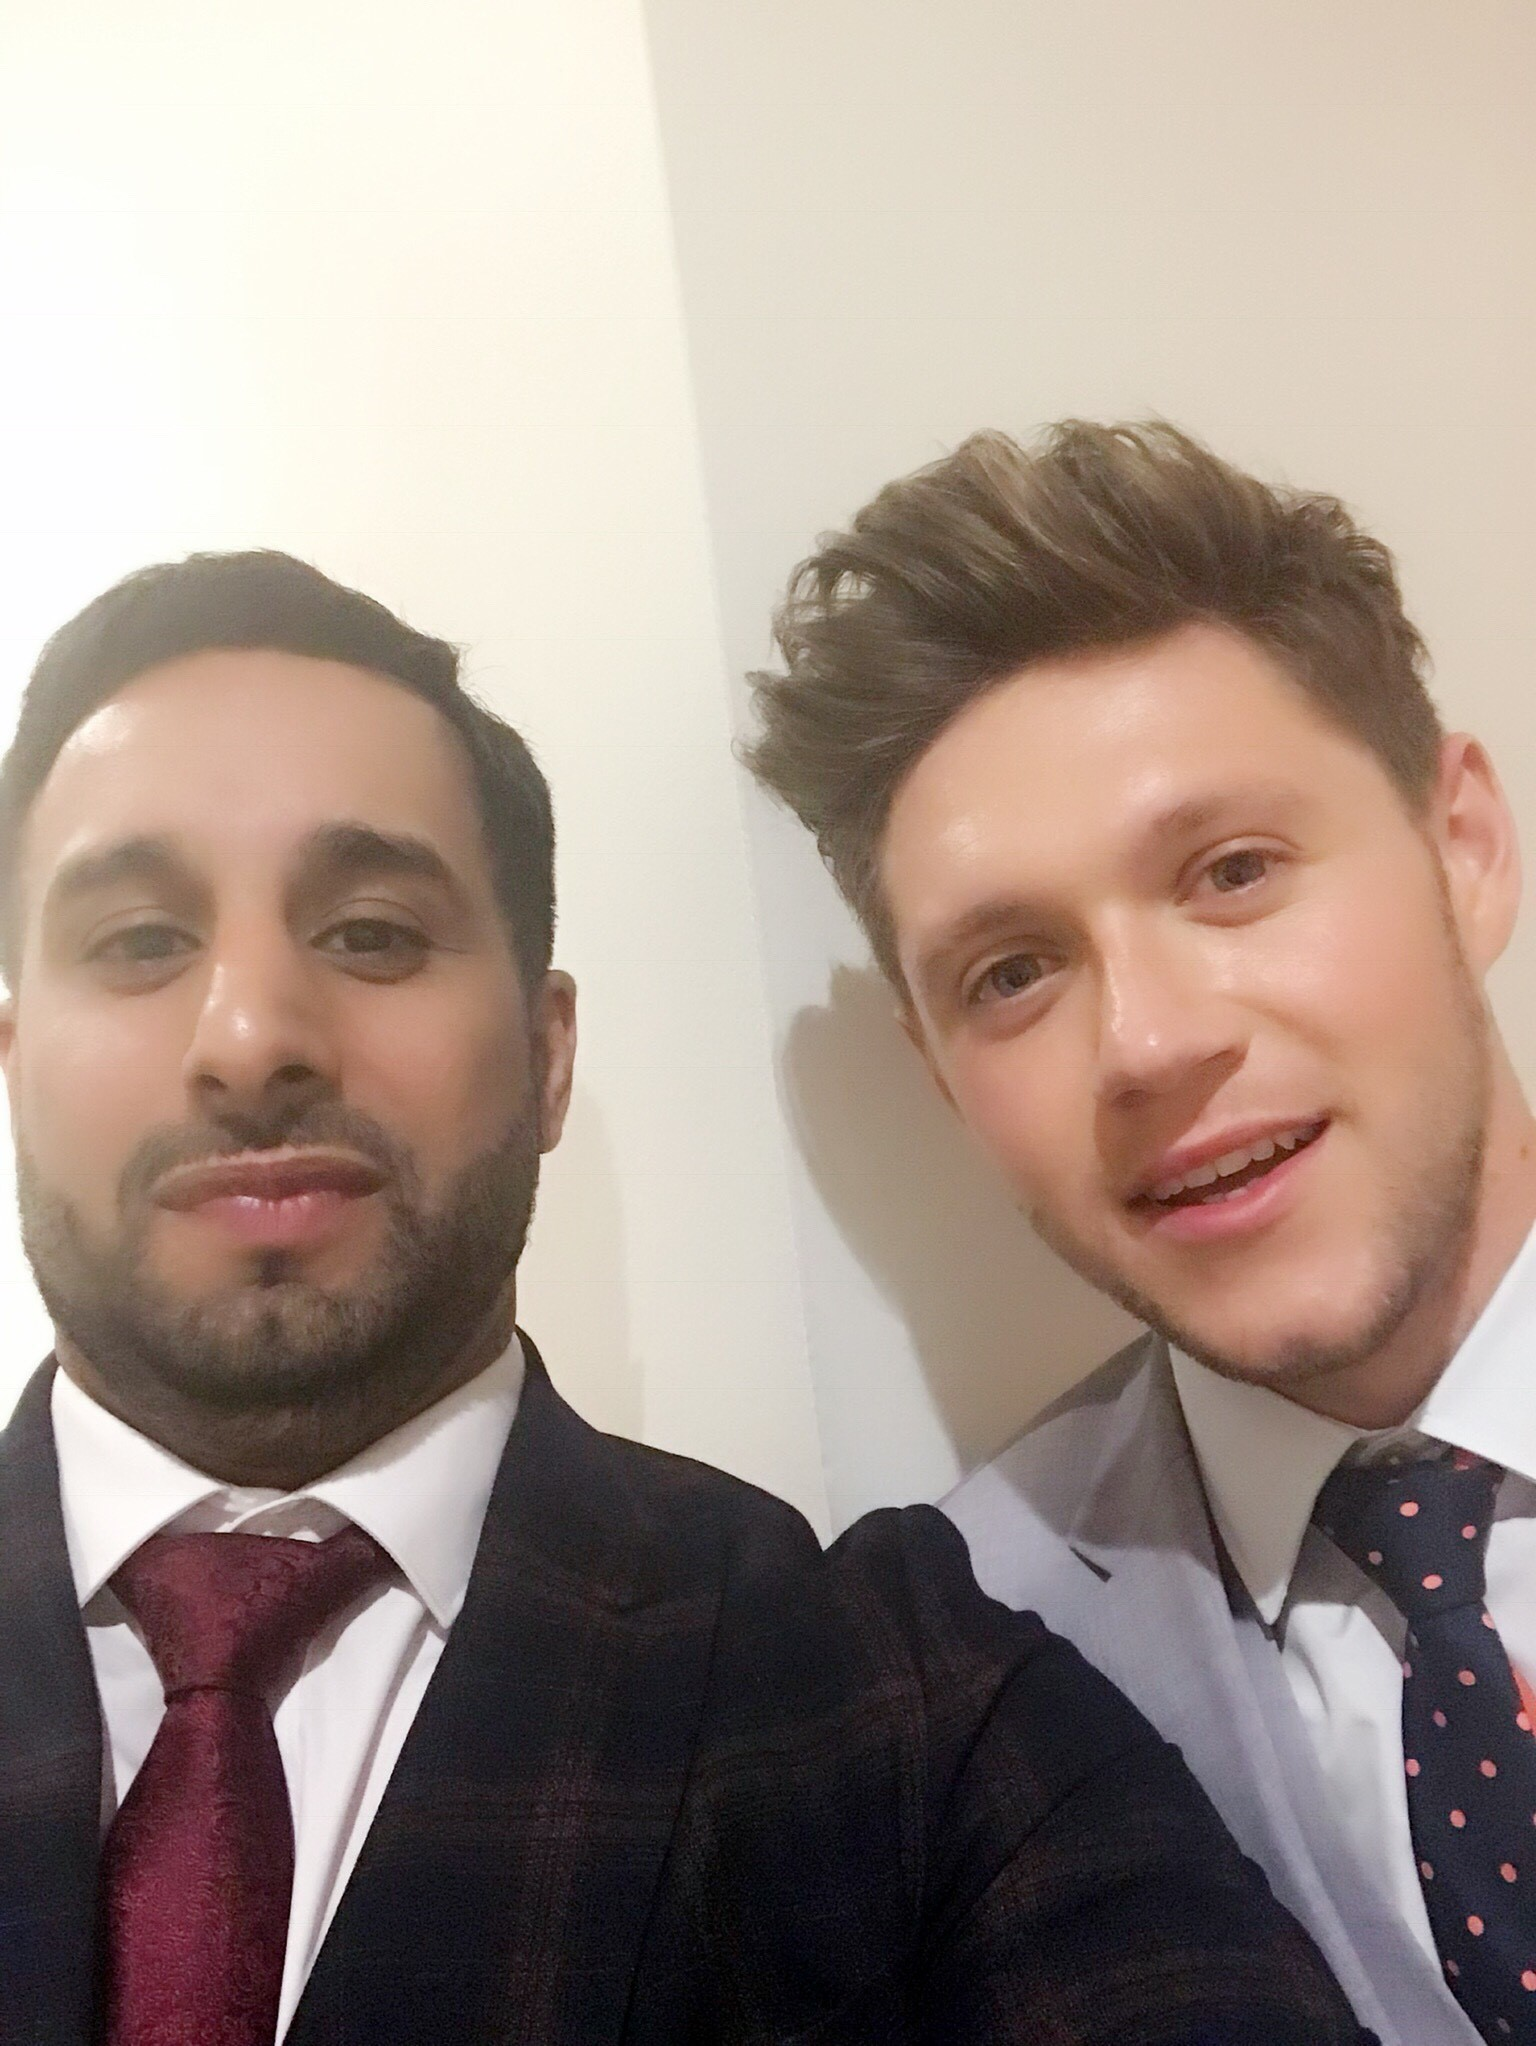 Jay Dhillon is pictured with One Direction singer Niall Horan at a charity event. Penguin PR: public relations, media and communications